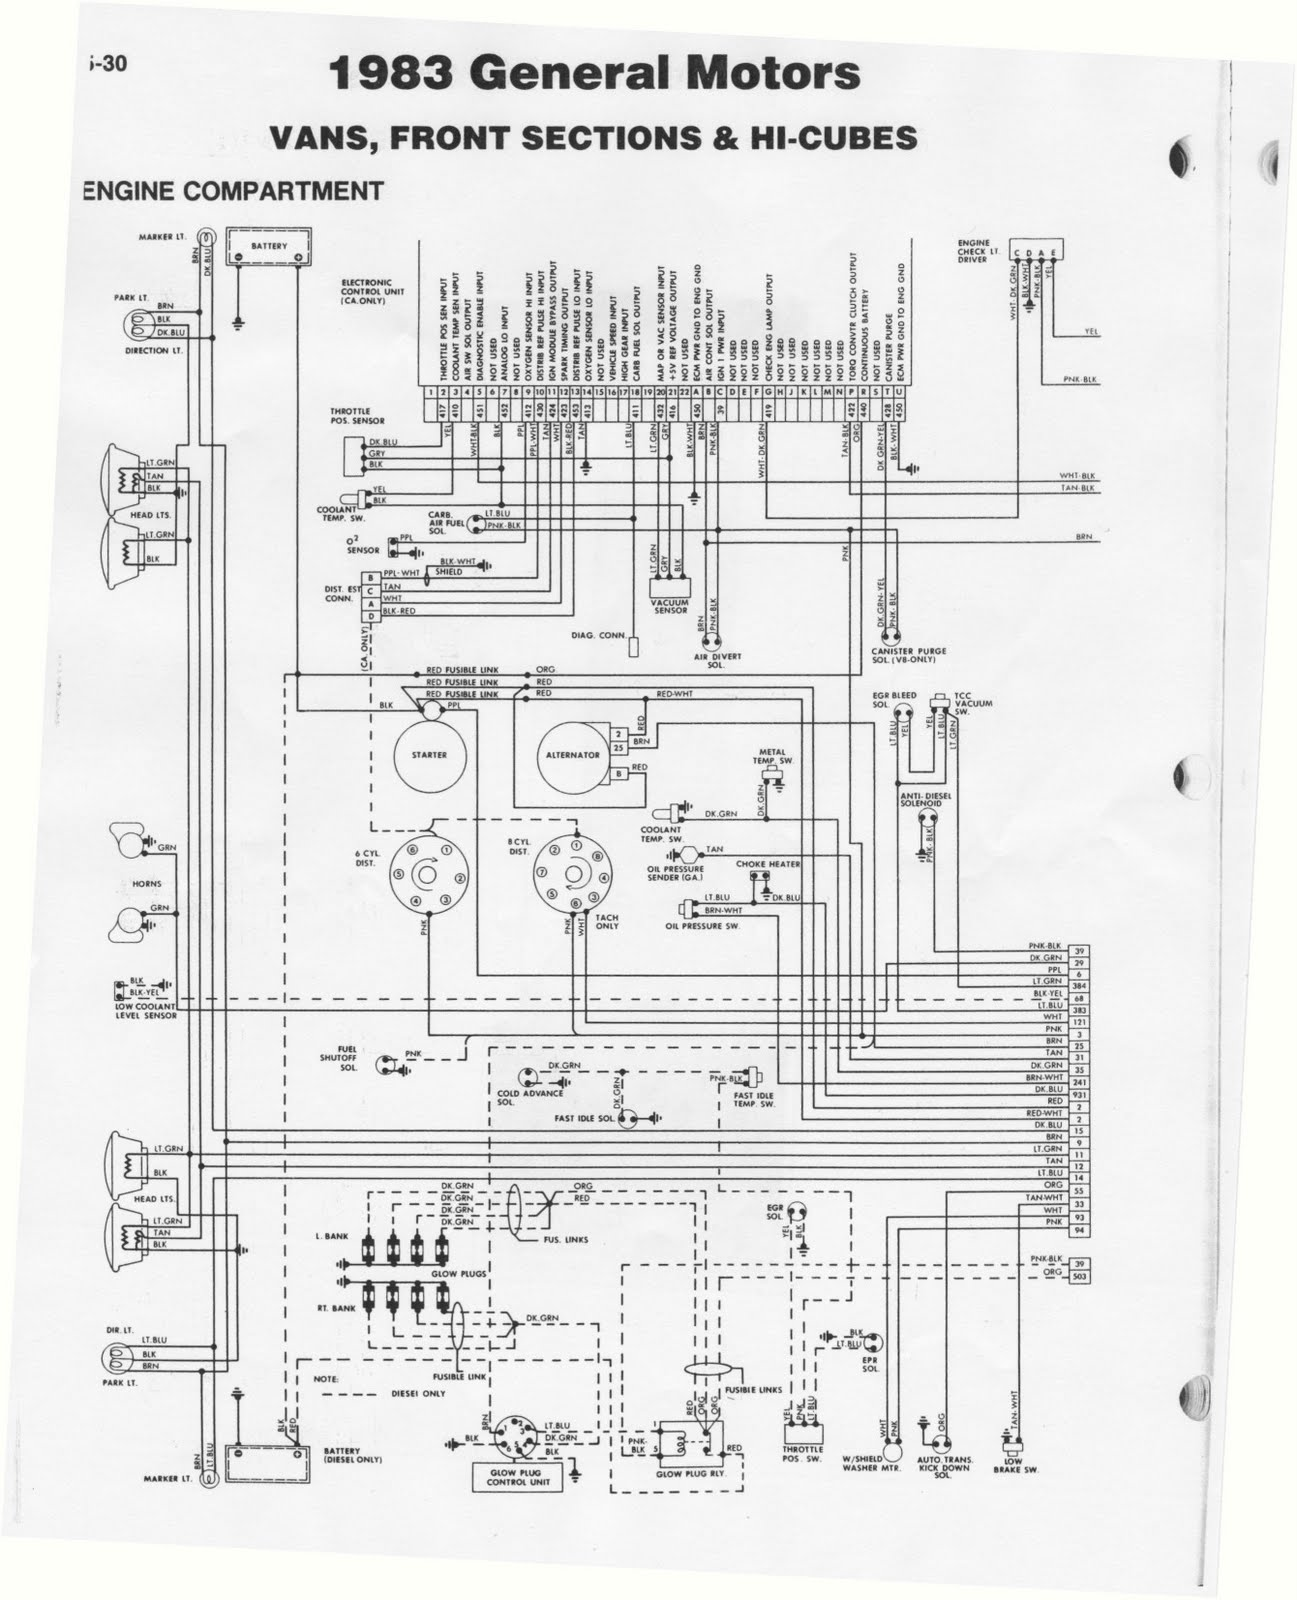 Fleetwood Southwind Wiring Diagram on fleetwood fiesta wiring diagram, fleetwood discovery wiring diagram, fleetwood providence wiring diagram, fleetwood prowler wiring diagram, fleetwood mallard wiring diagram, fleetwood tioga wiring diagram, fleetwood wilderness wiring diagram, fleetwood excursion wiring diagram, fleetwood flair wiring diagram, fleetwood storm wiring diagram, fleetwood terra wiring diagram, fleetwood southwind brake system,